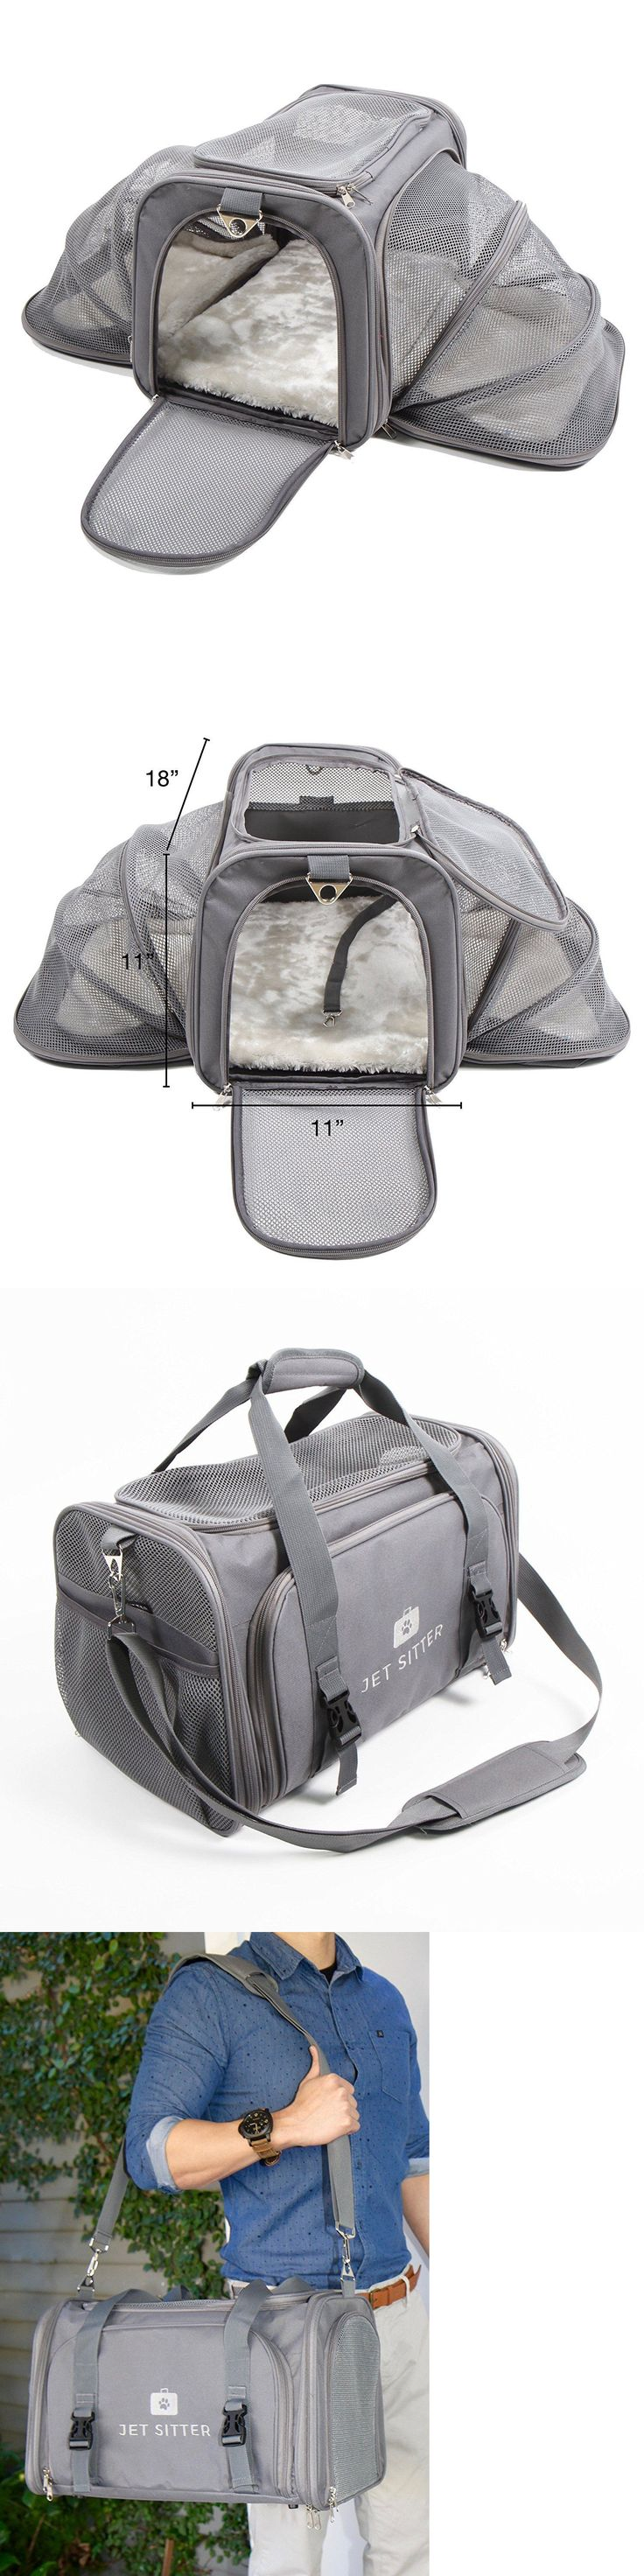 Carriers and Crates 26702: Airline Approved Pet Carrier Grey For Travel Small Dogs Cats Seat Belt Buckles BUY IT NOW ONLY: $54.99